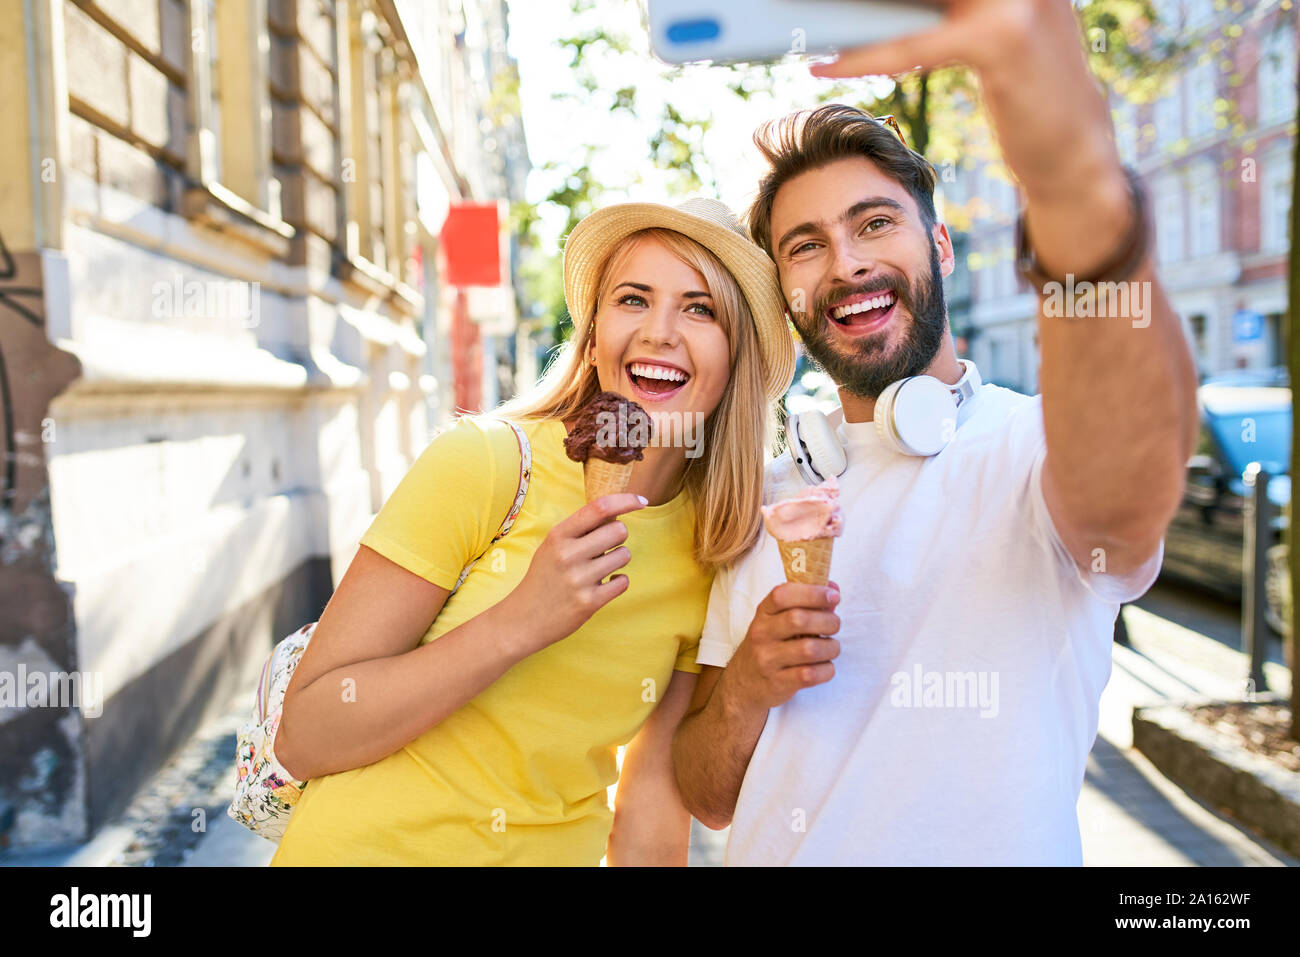 Happy young couple taking a selfie while eating ice cream in the city Stock Photo